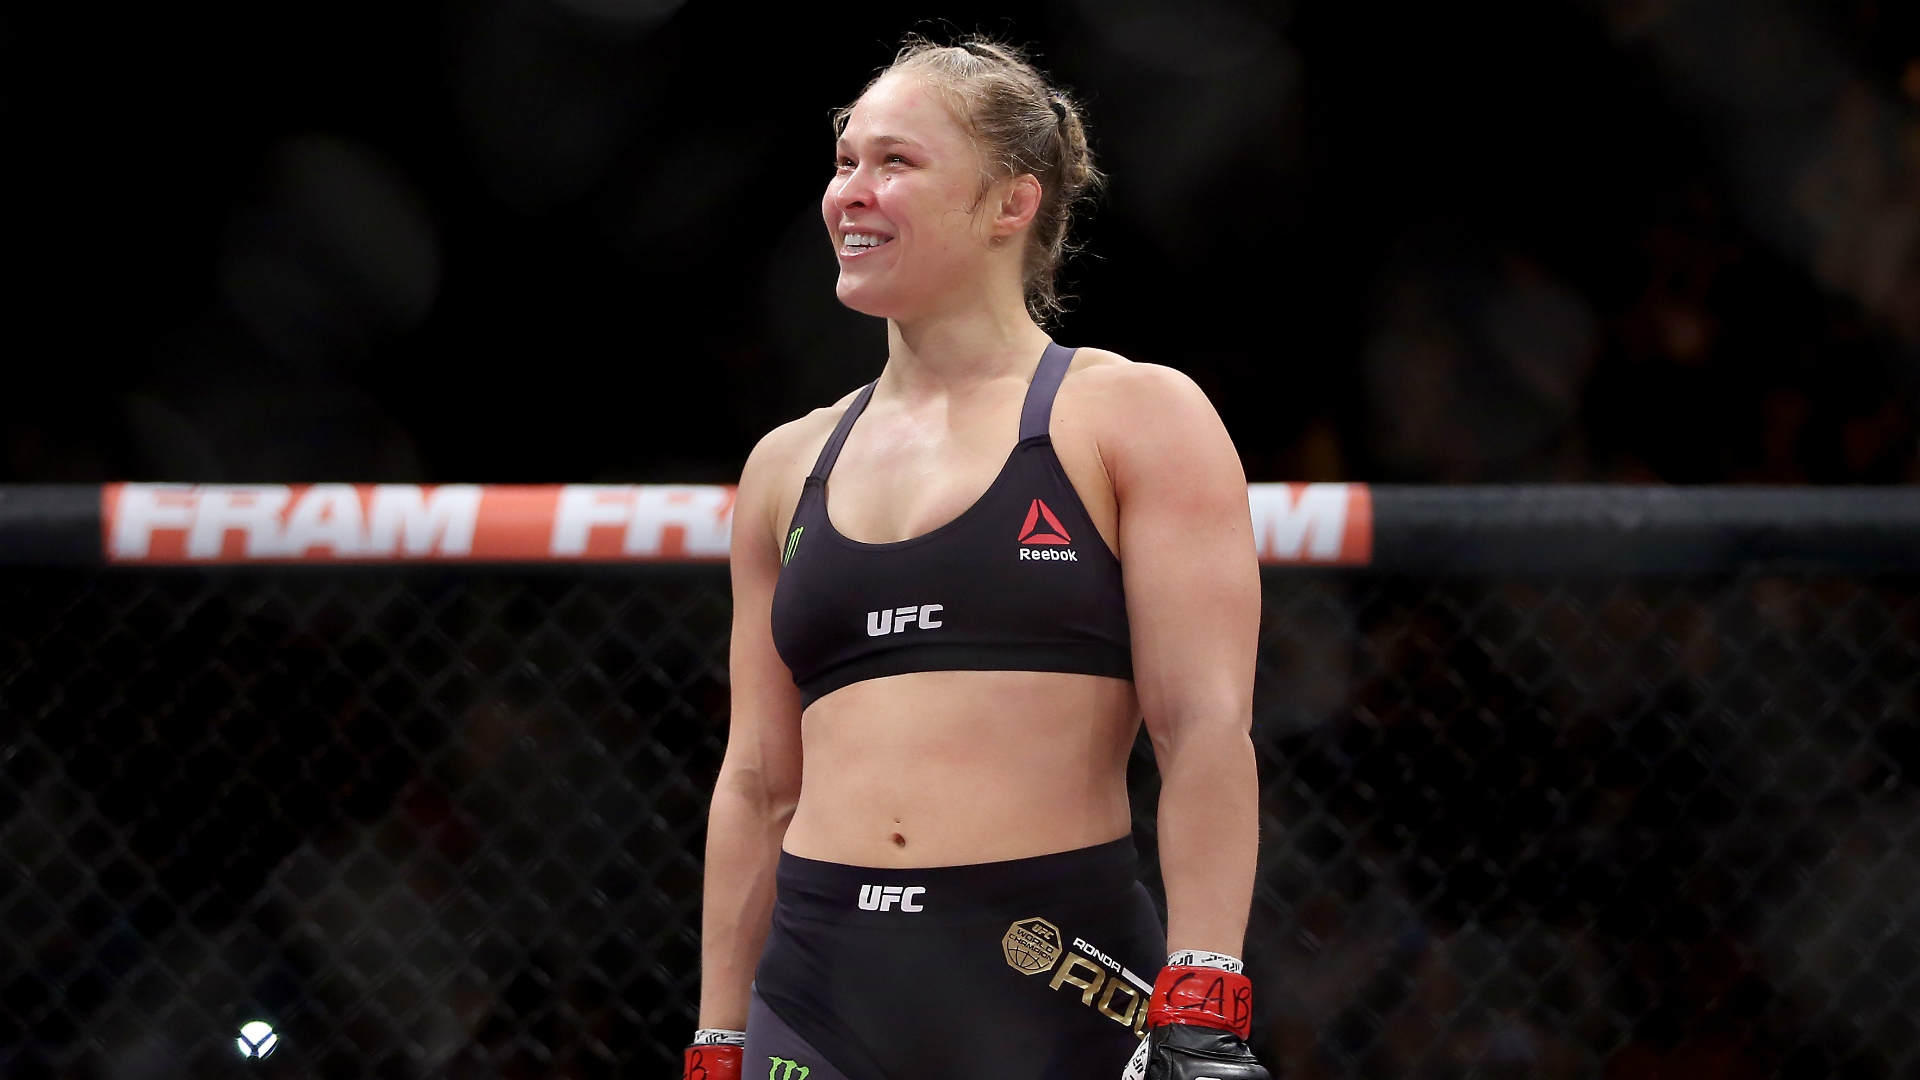 Ronda Rousey nearly loses finger while filming TV show